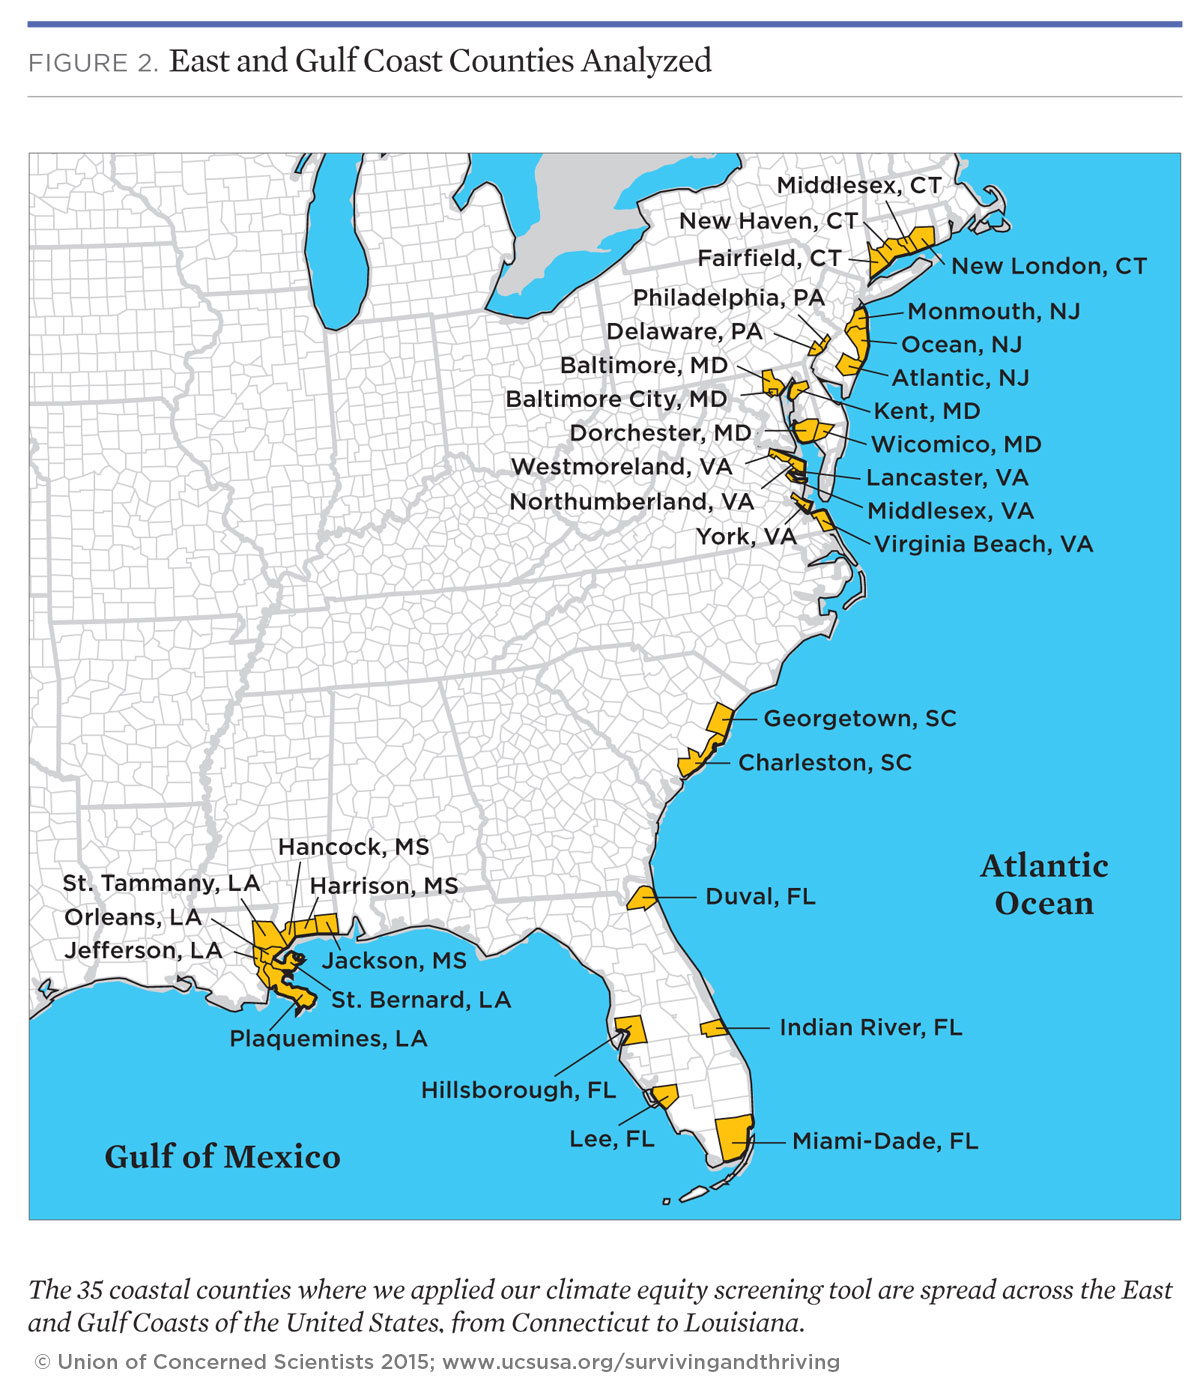 Climate Change Florida Map.Surviving And Thriving In The Face Of Rising Seas Building